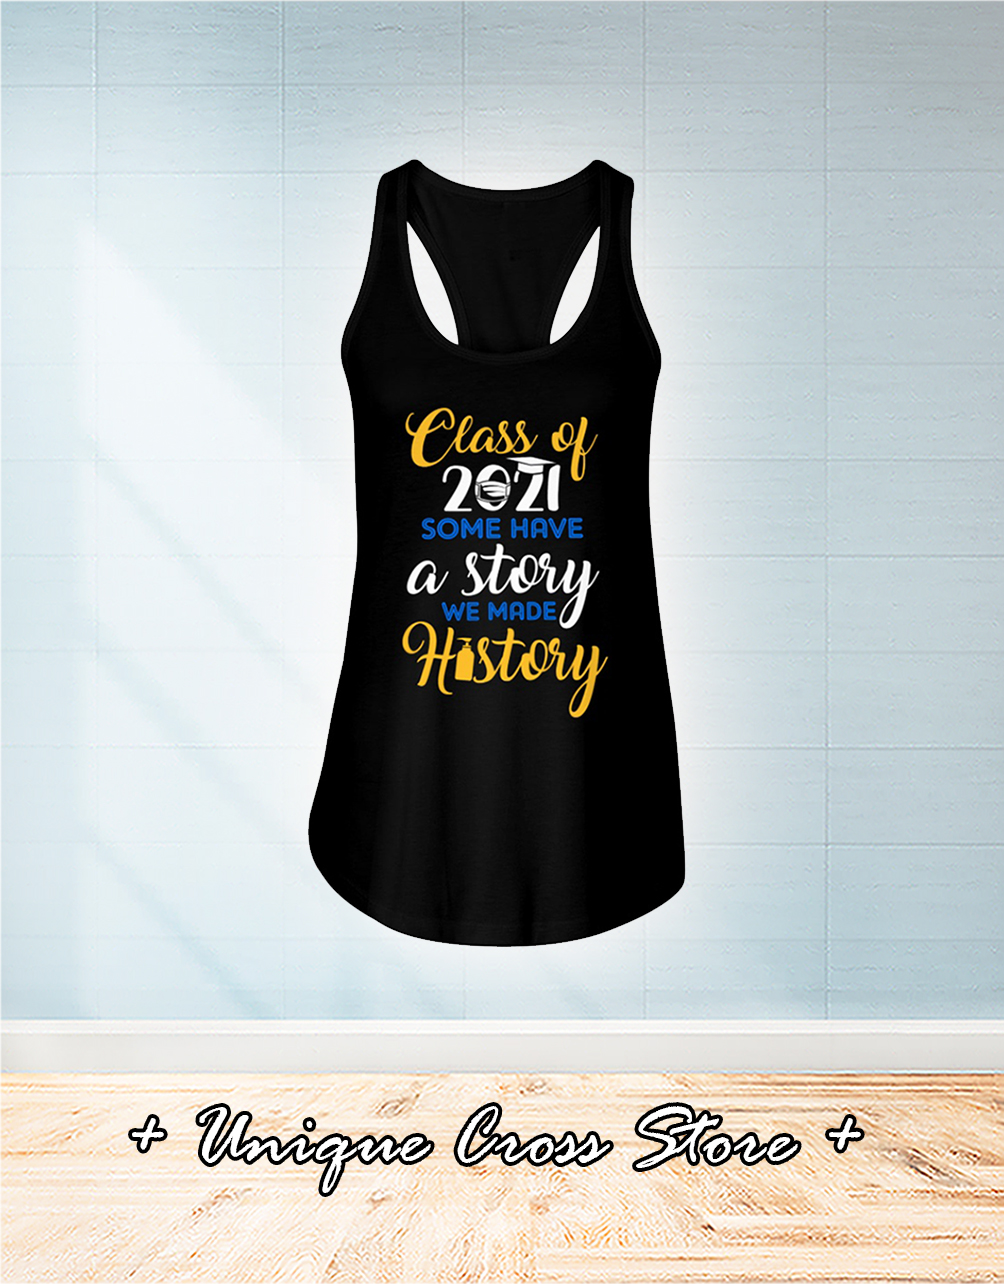 Class Of 2021 Some Have A Story We Made History flow tank